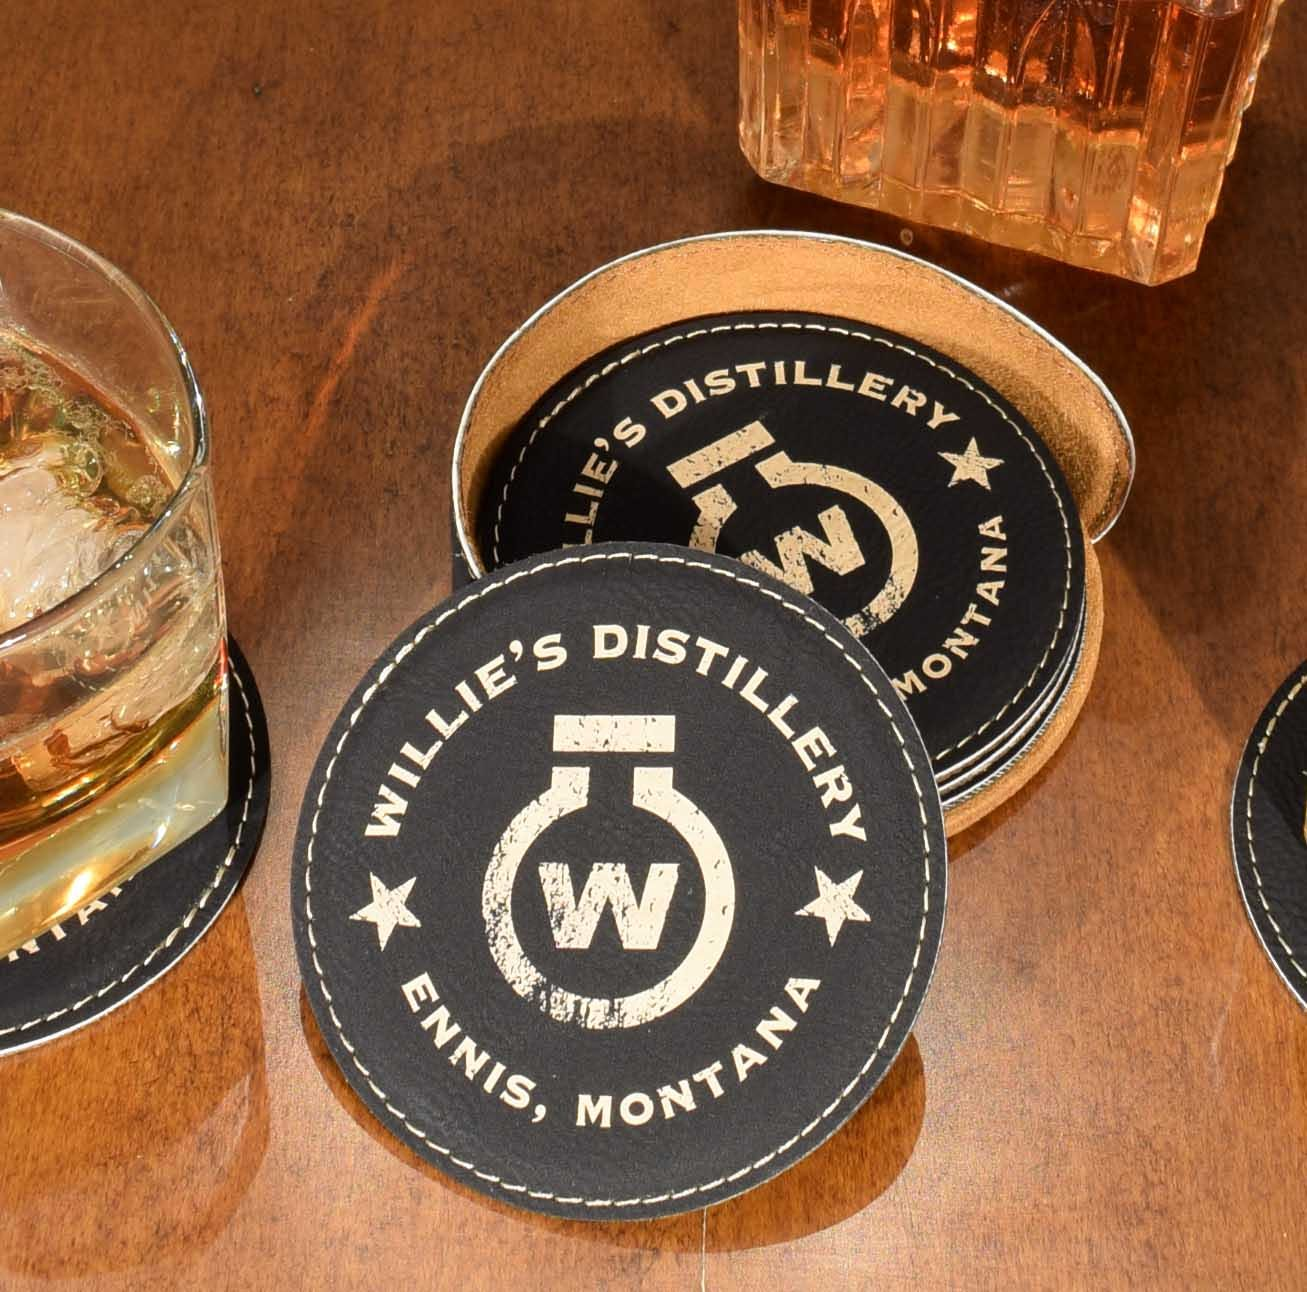 Coasters Barrel sold by Thousand Oaks Barrel Co.